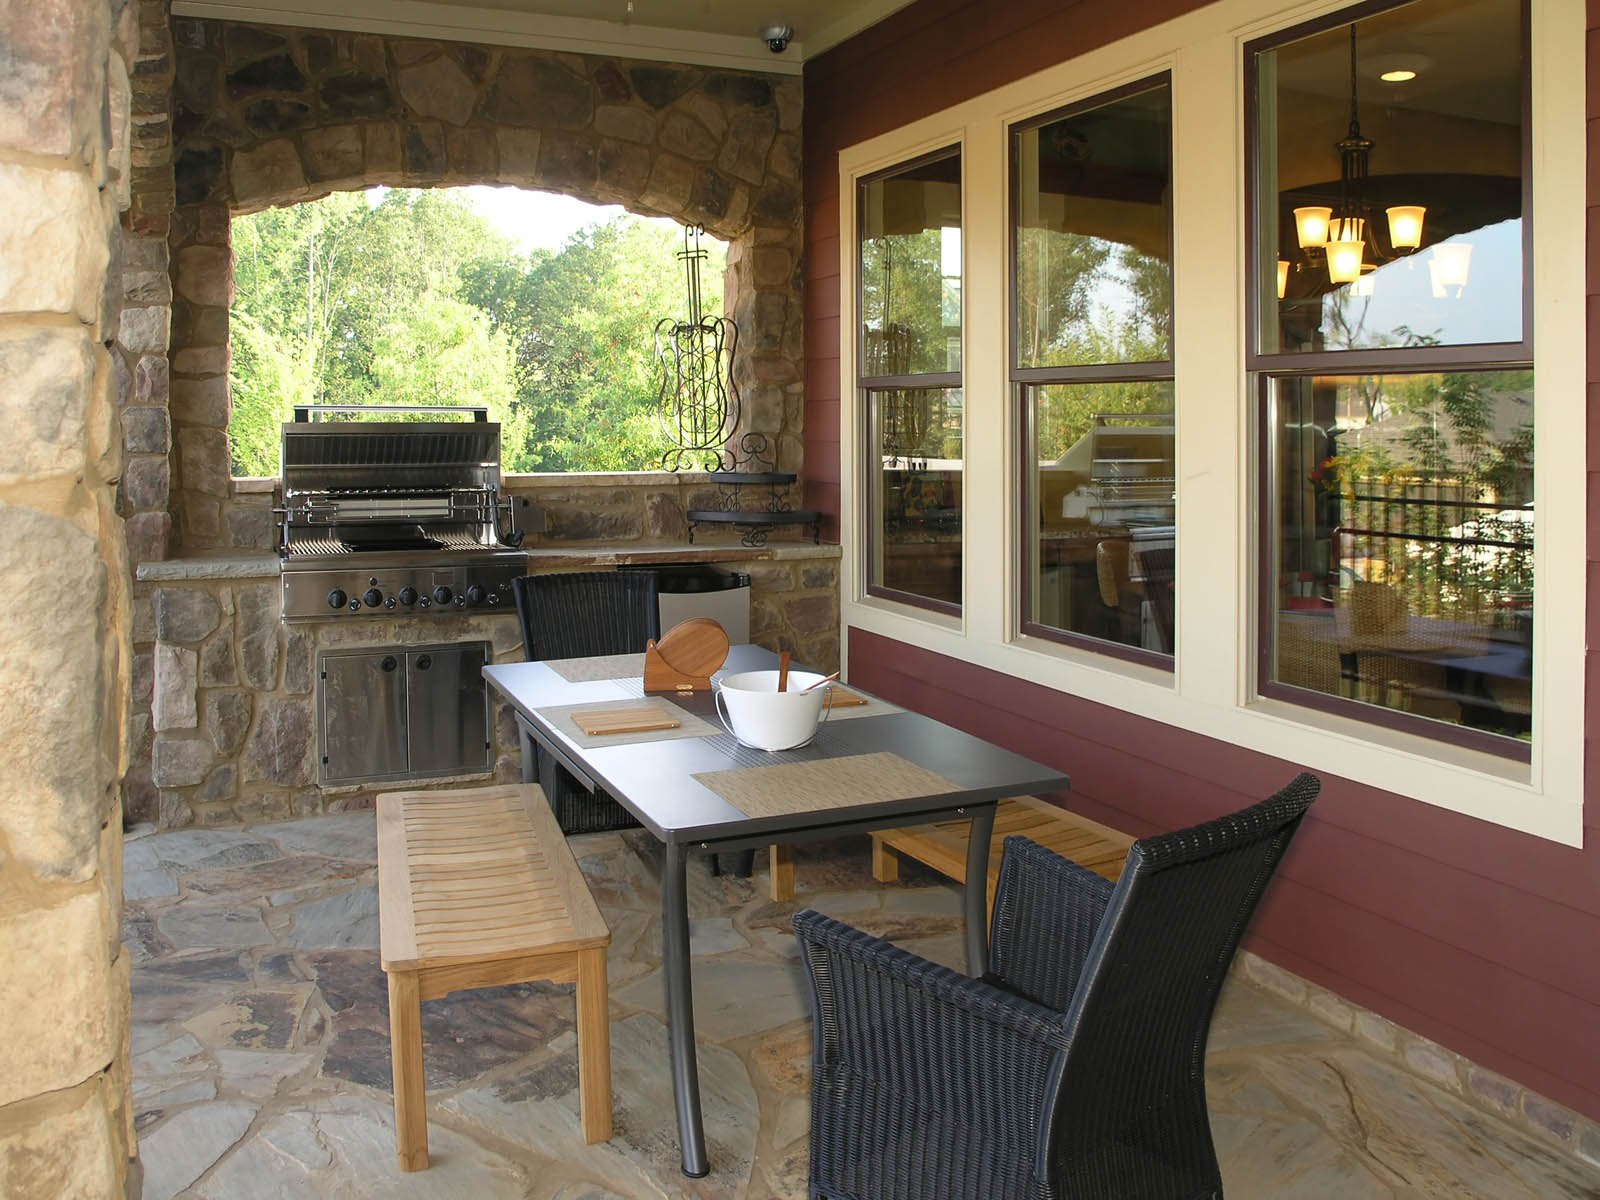 Italian Outdoor Kitchen Goldsboro Outdoor Living Gallery Clayton Outdoor Grills